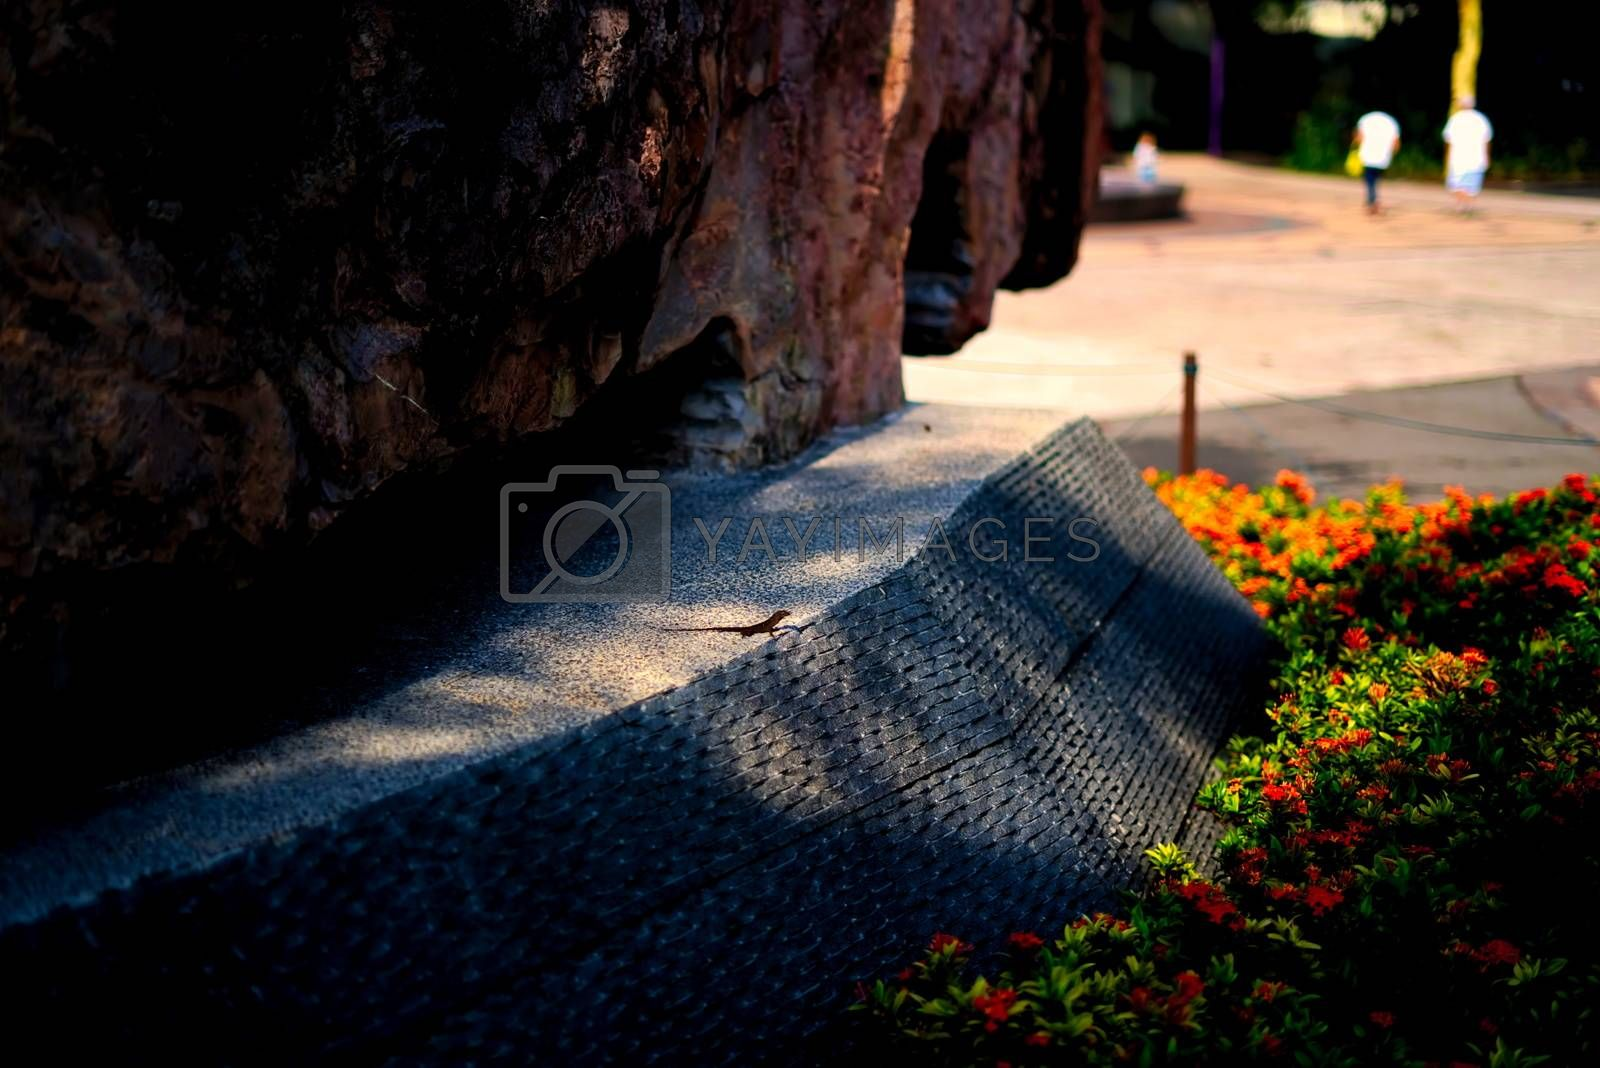 lizard reptile hidden on a pedestal between a sculpted rock and flowers with two blurry passerby in the background